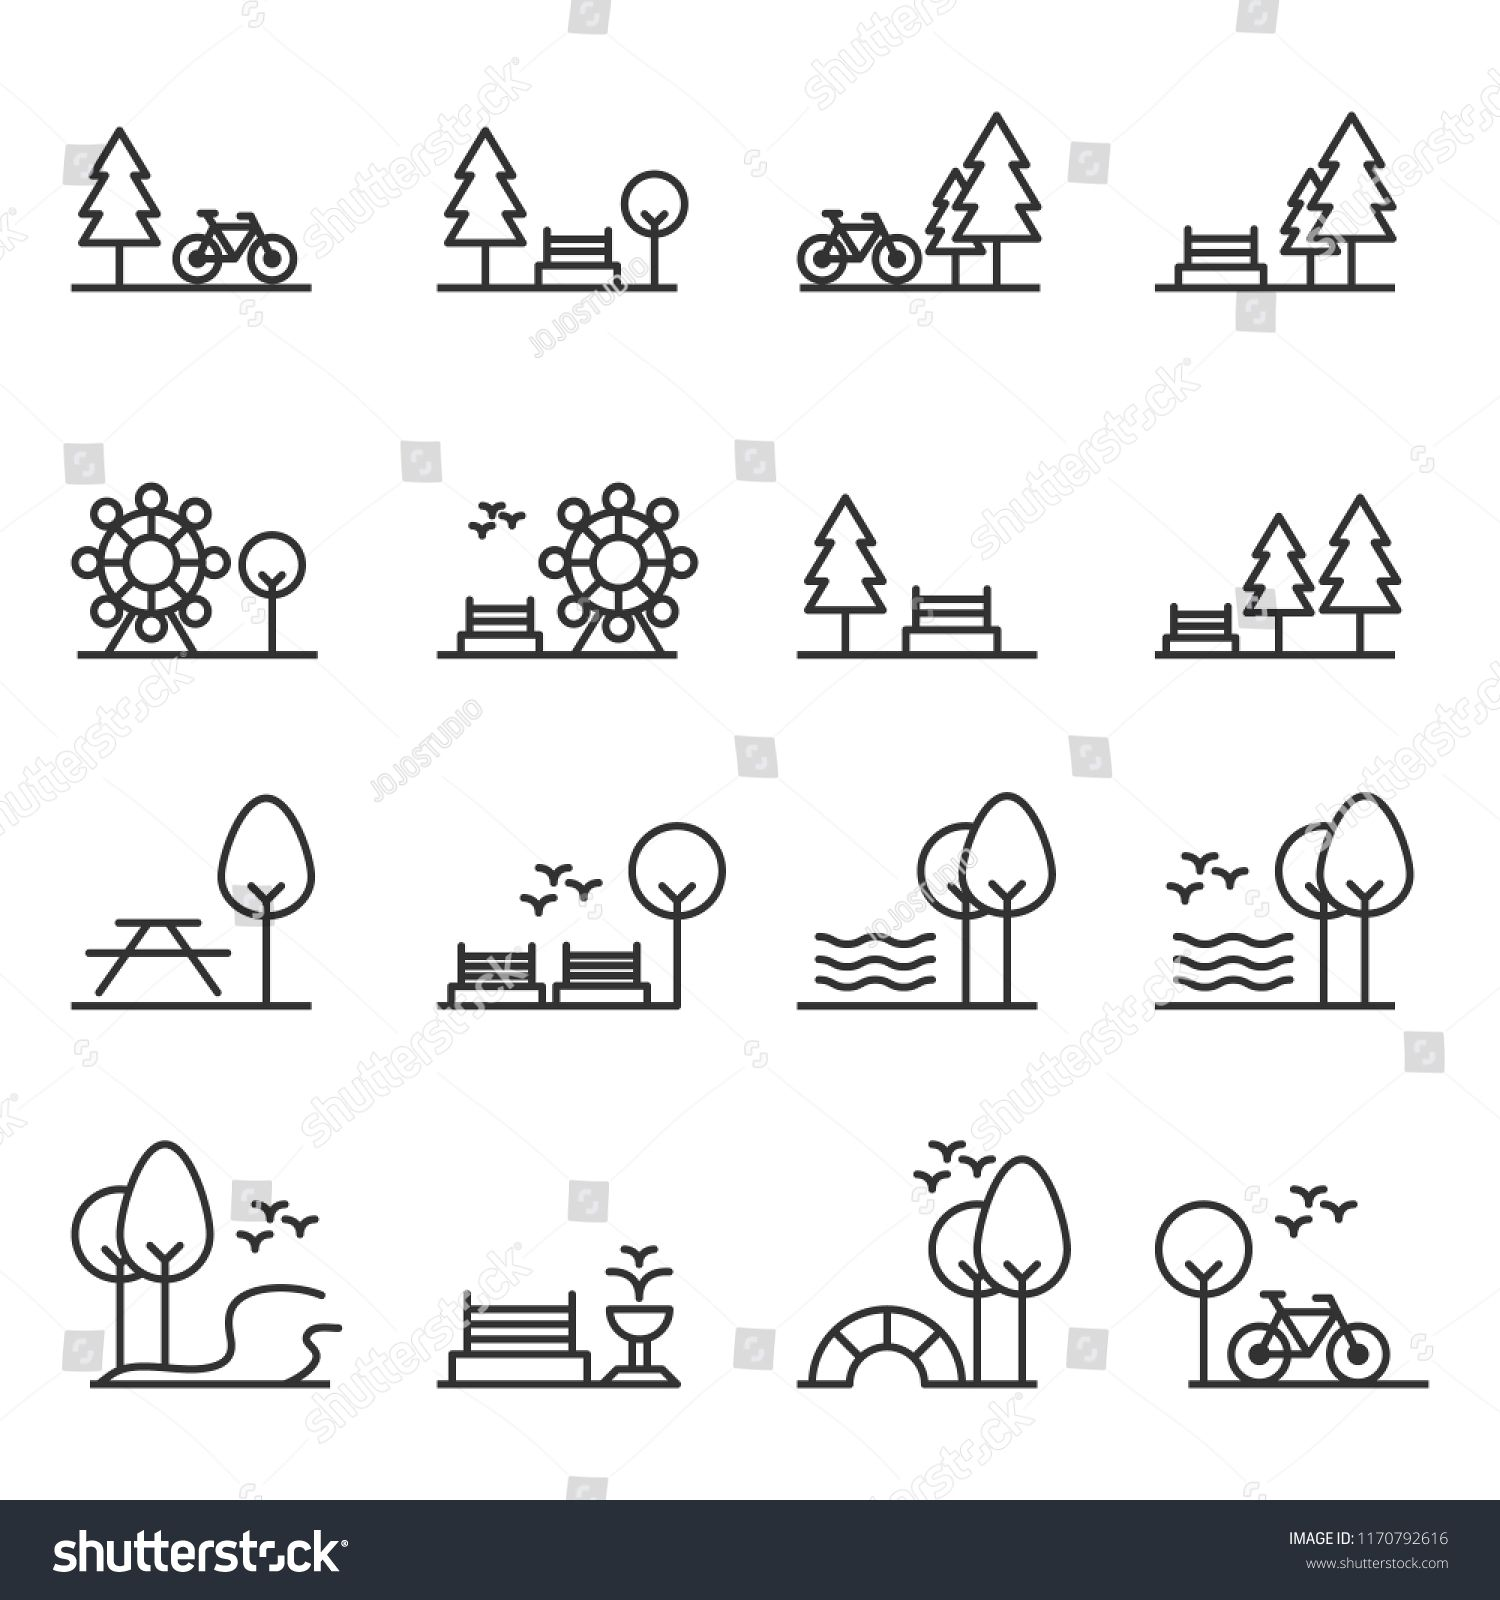 Parking Area Logo Car Computer Icons Parking Icon Free Parking Transparent Background Png Clipart Icon Parking Instagram Logo Transparent Computer Icon